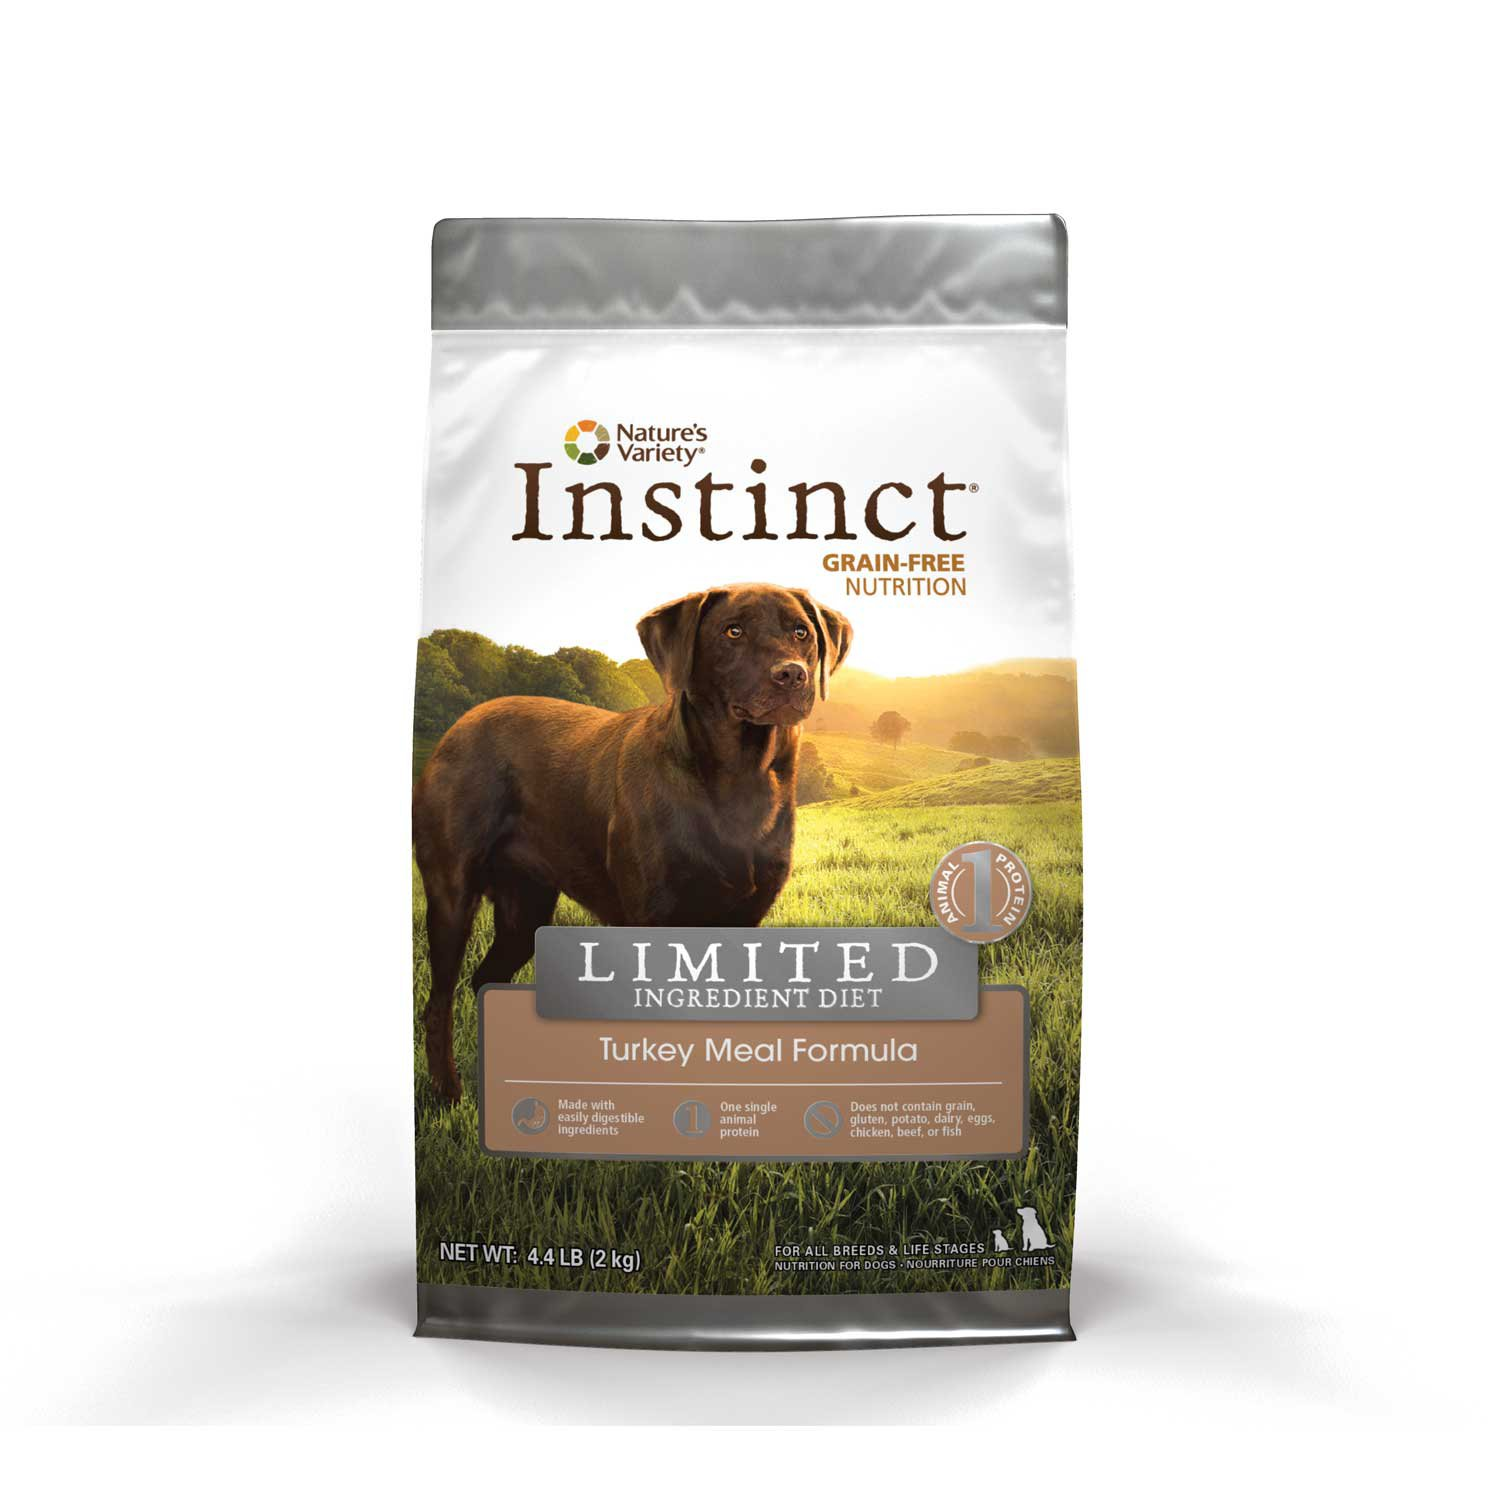 Nature's Variety Instinct Grain-Free Limited Ingredient Diet Turkey Meal Formula Dry Dog Food